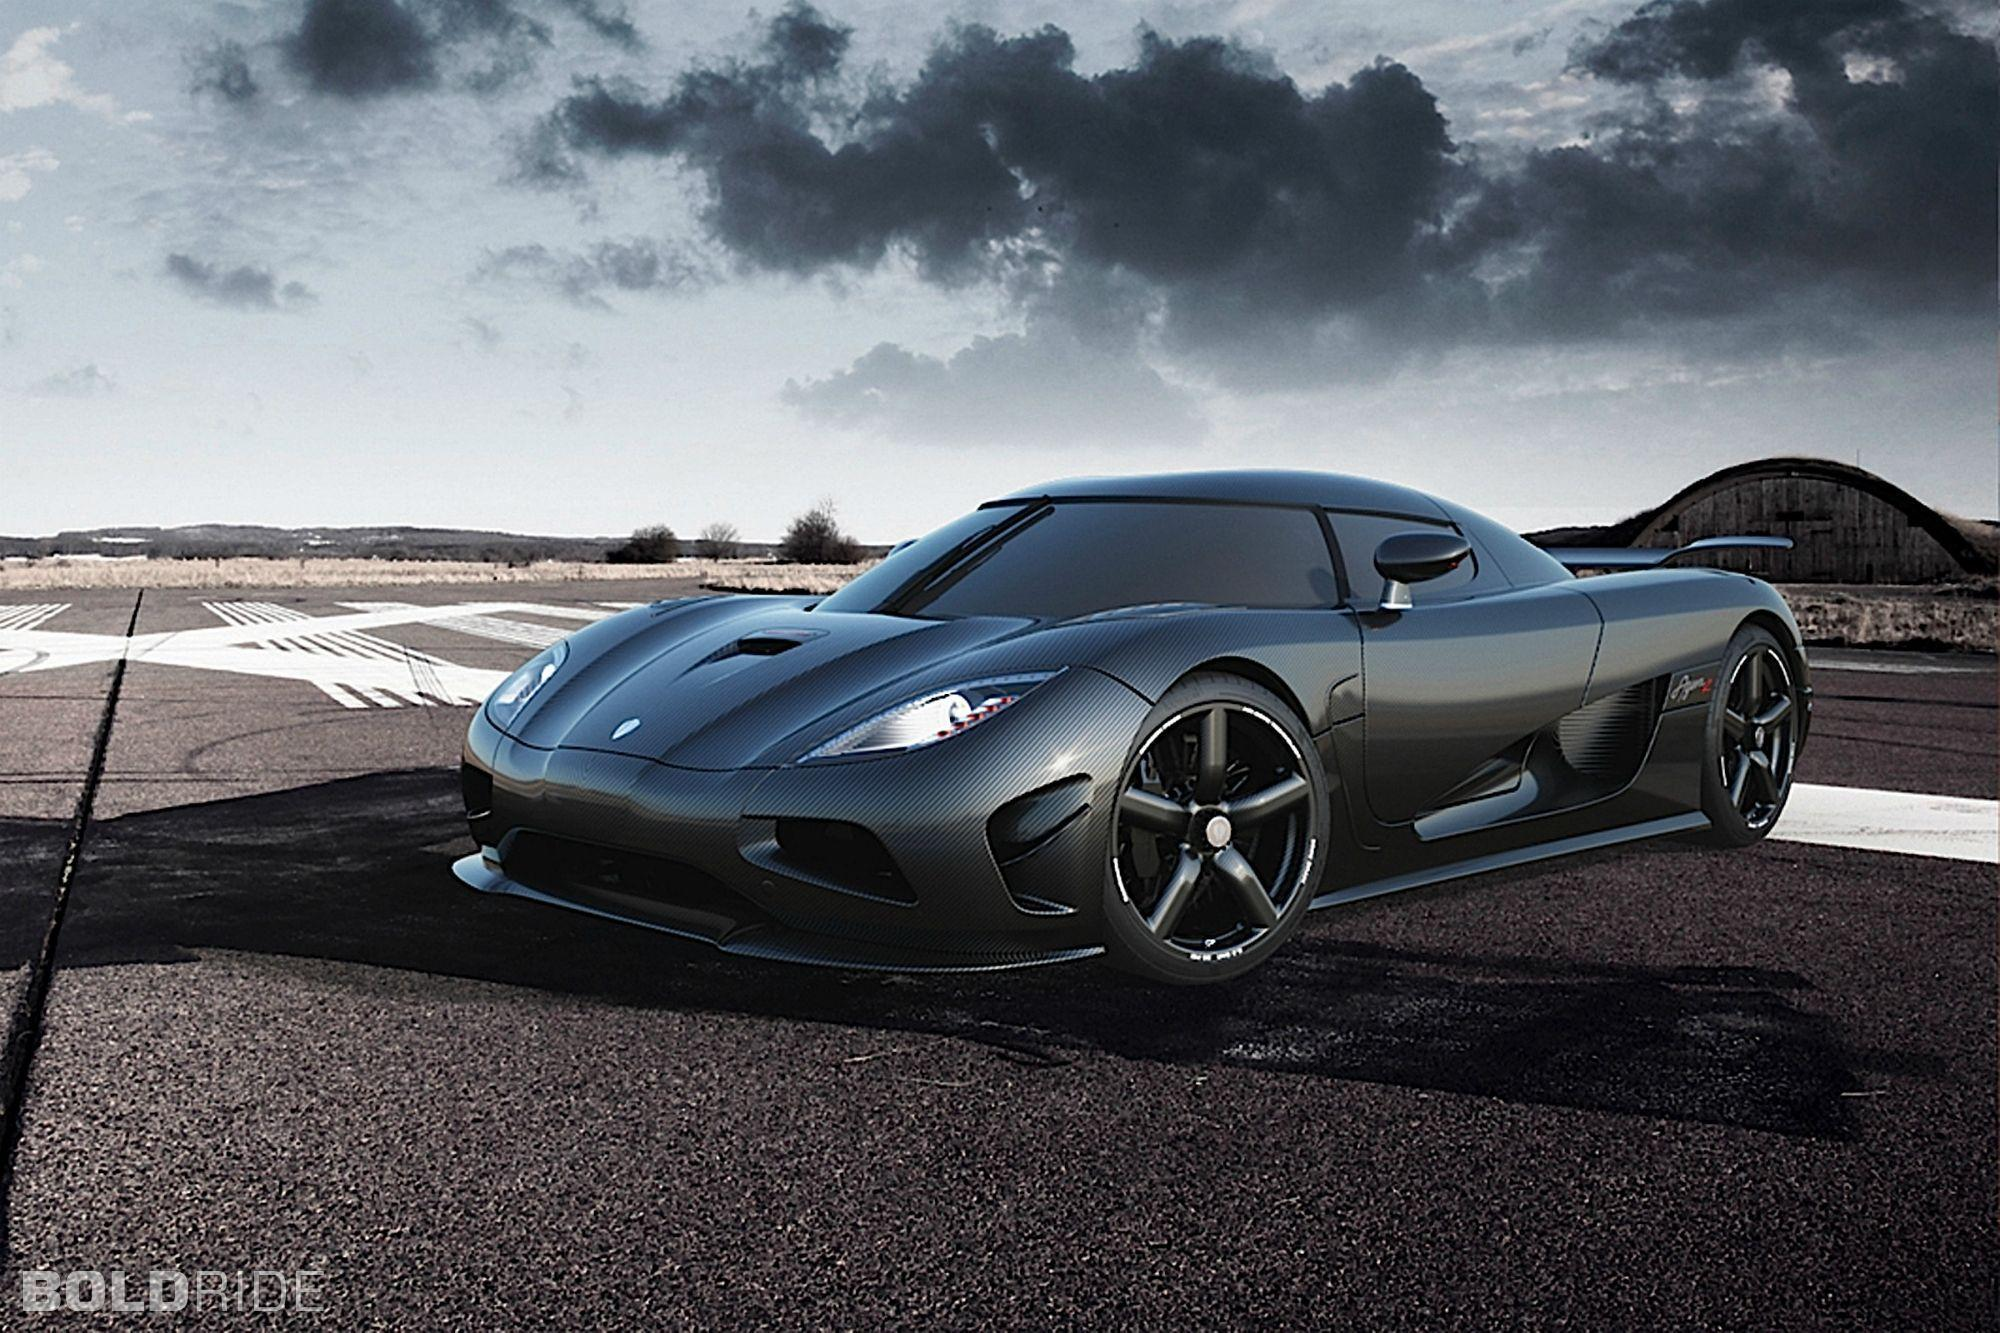 Koenigsegg Agera R Wallpapers (25+)